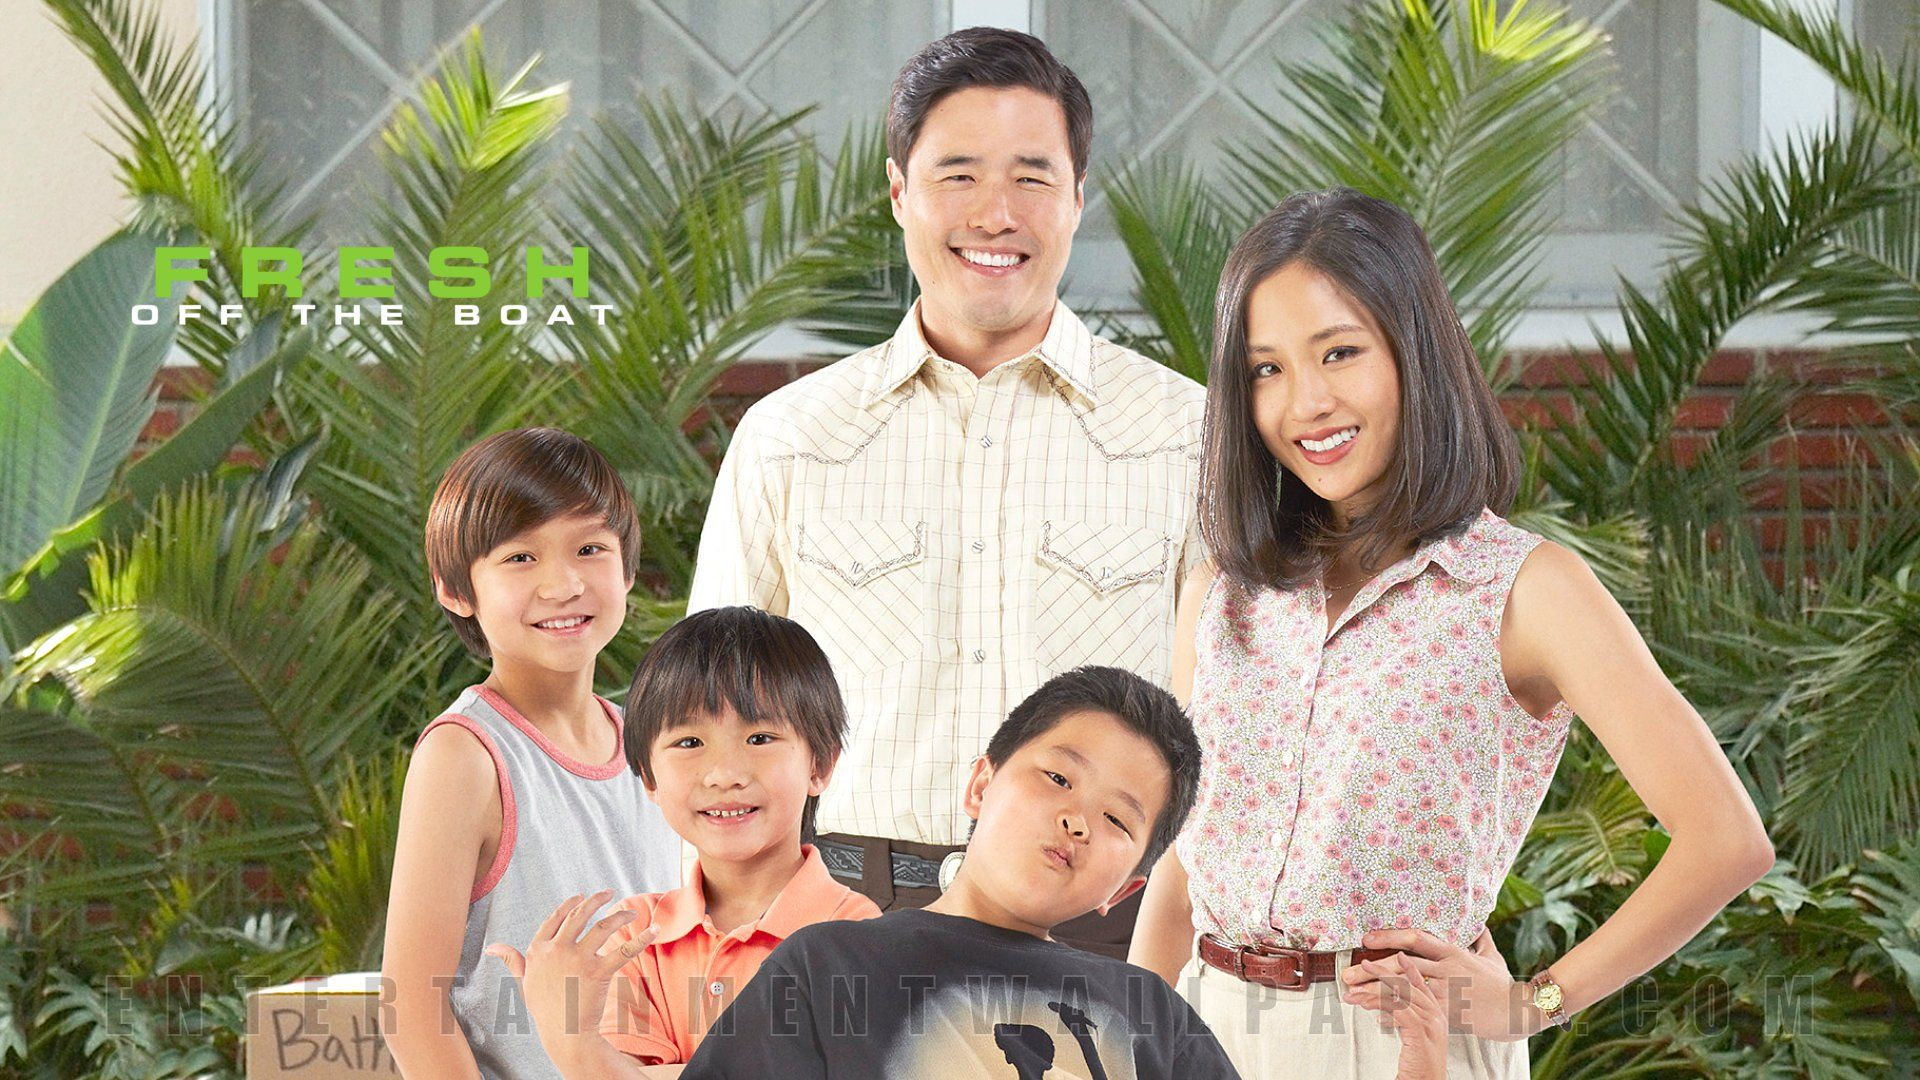 Fresh Off the Boat TV Series 2015 High Quality 4K